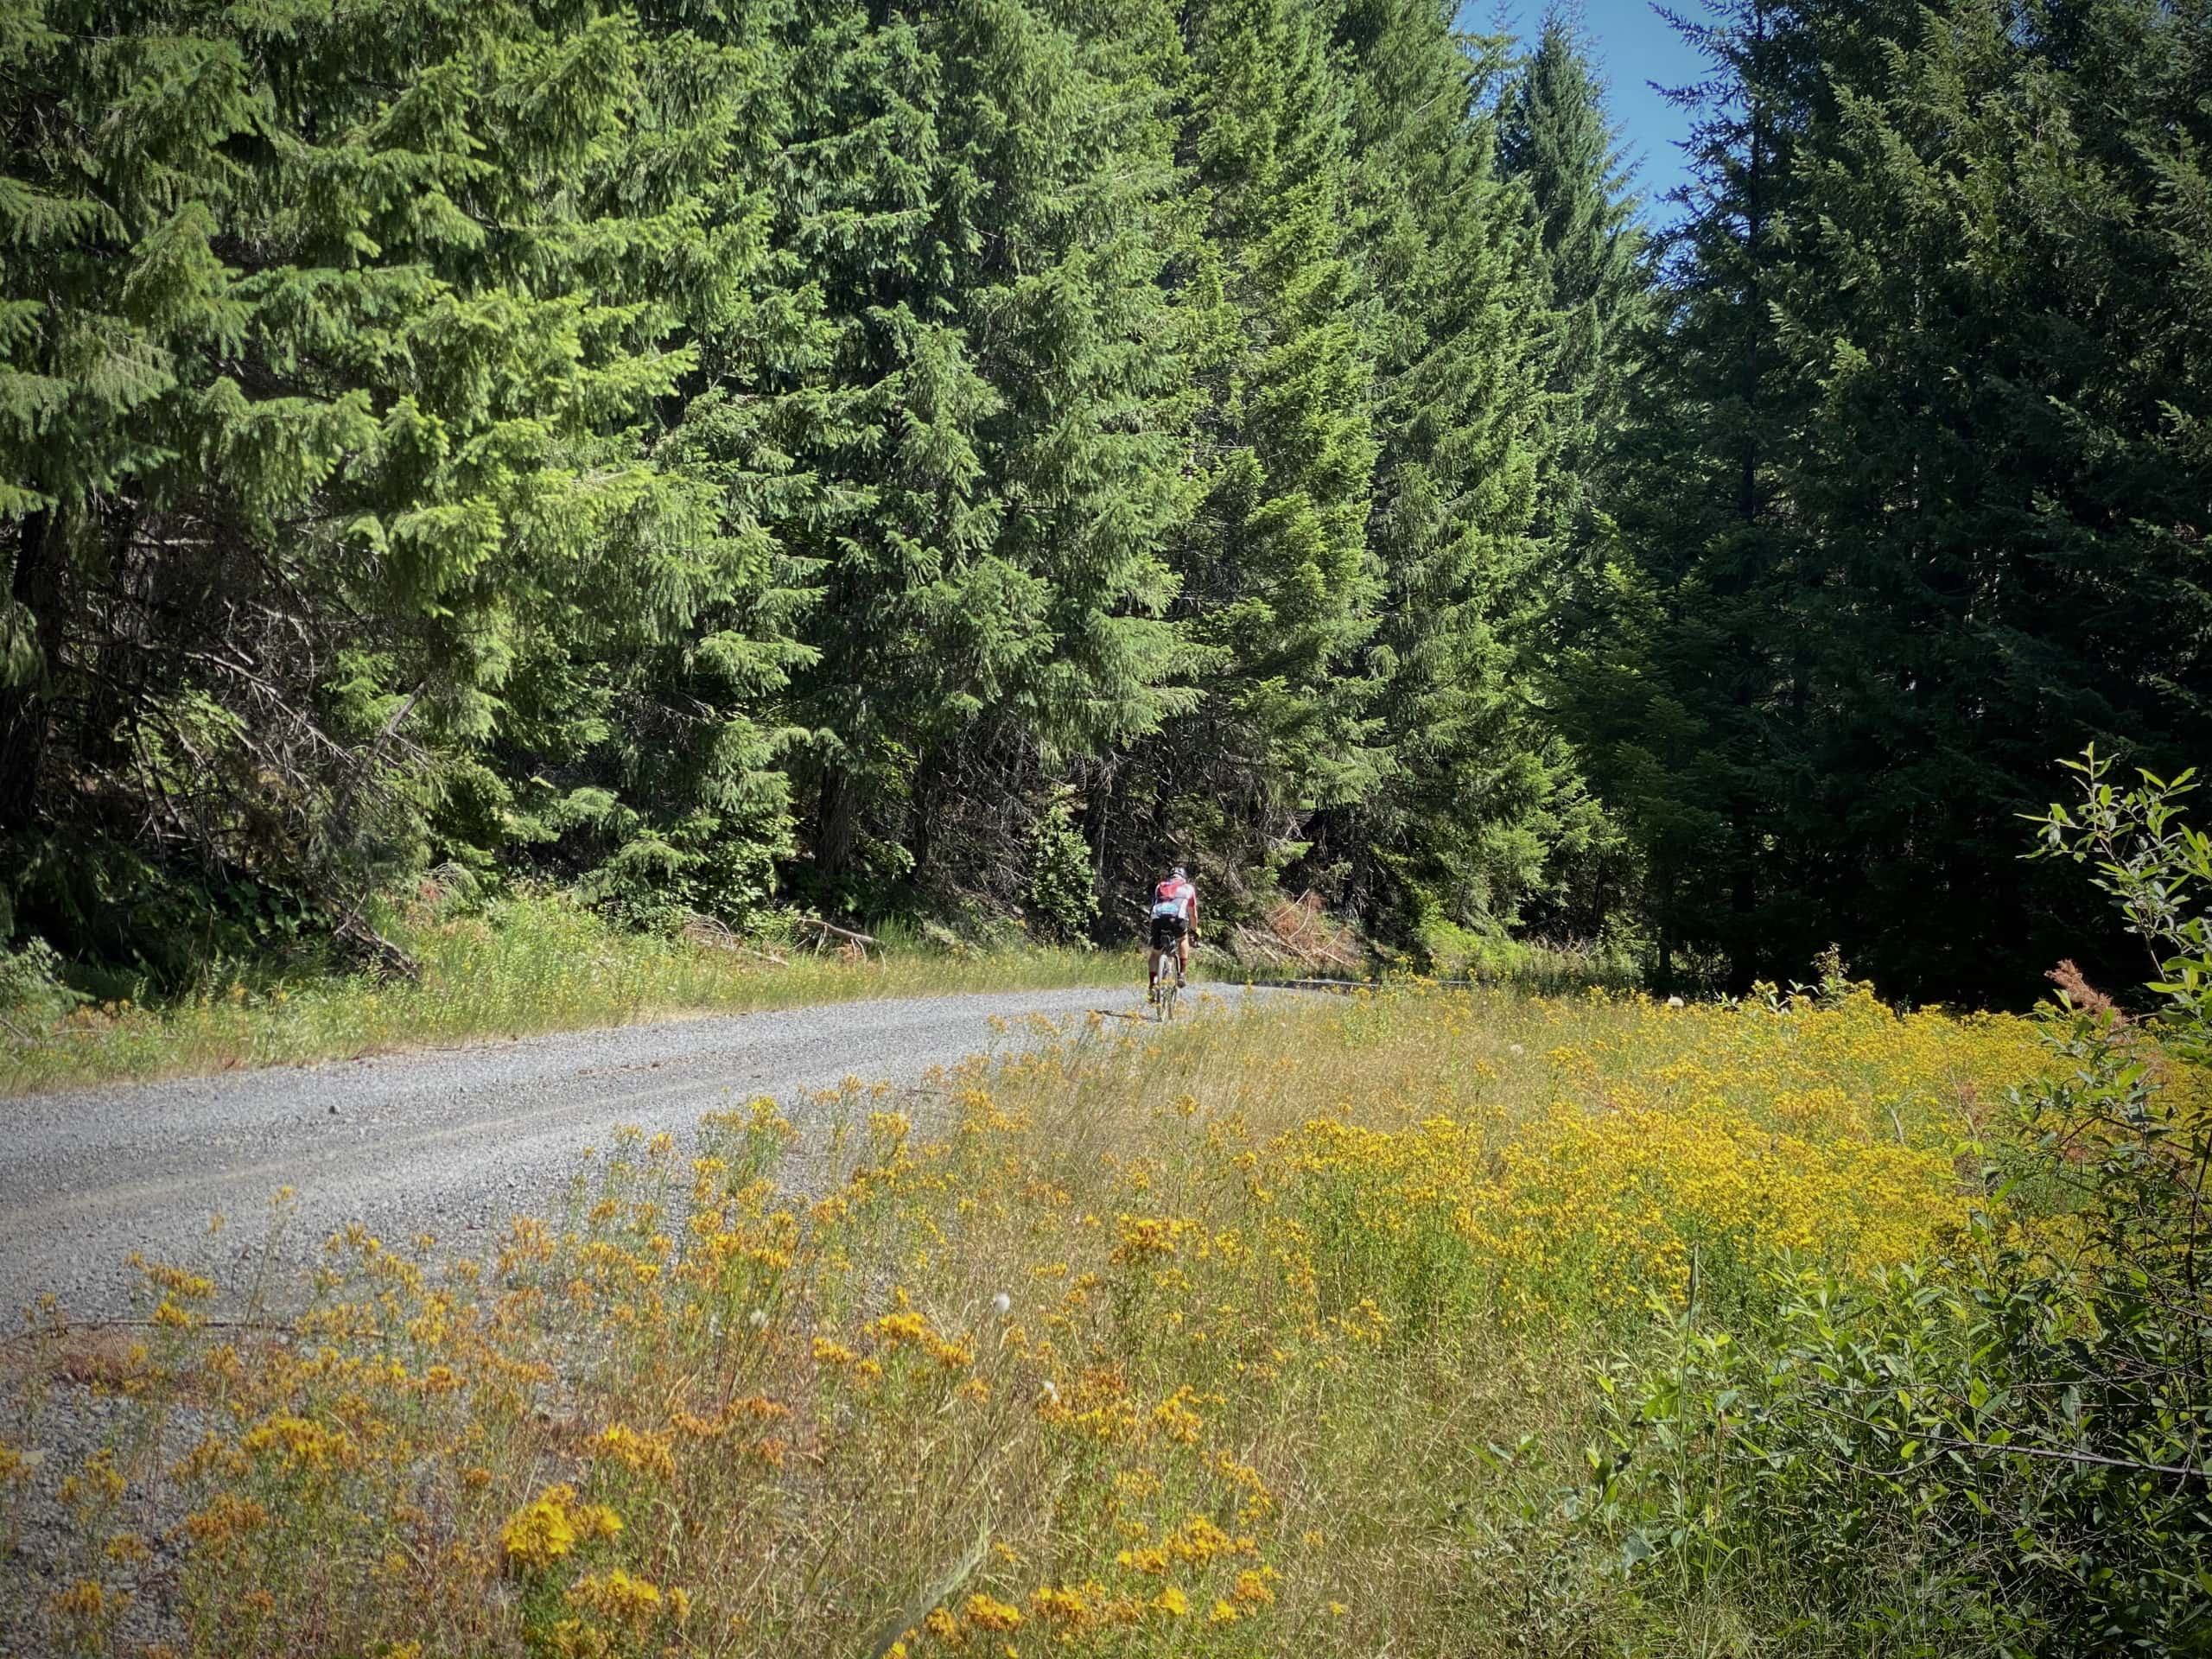 Gravel cyclist in background, yellow flowers in foreground. Along NF 23 near Oakridge, Oregon.